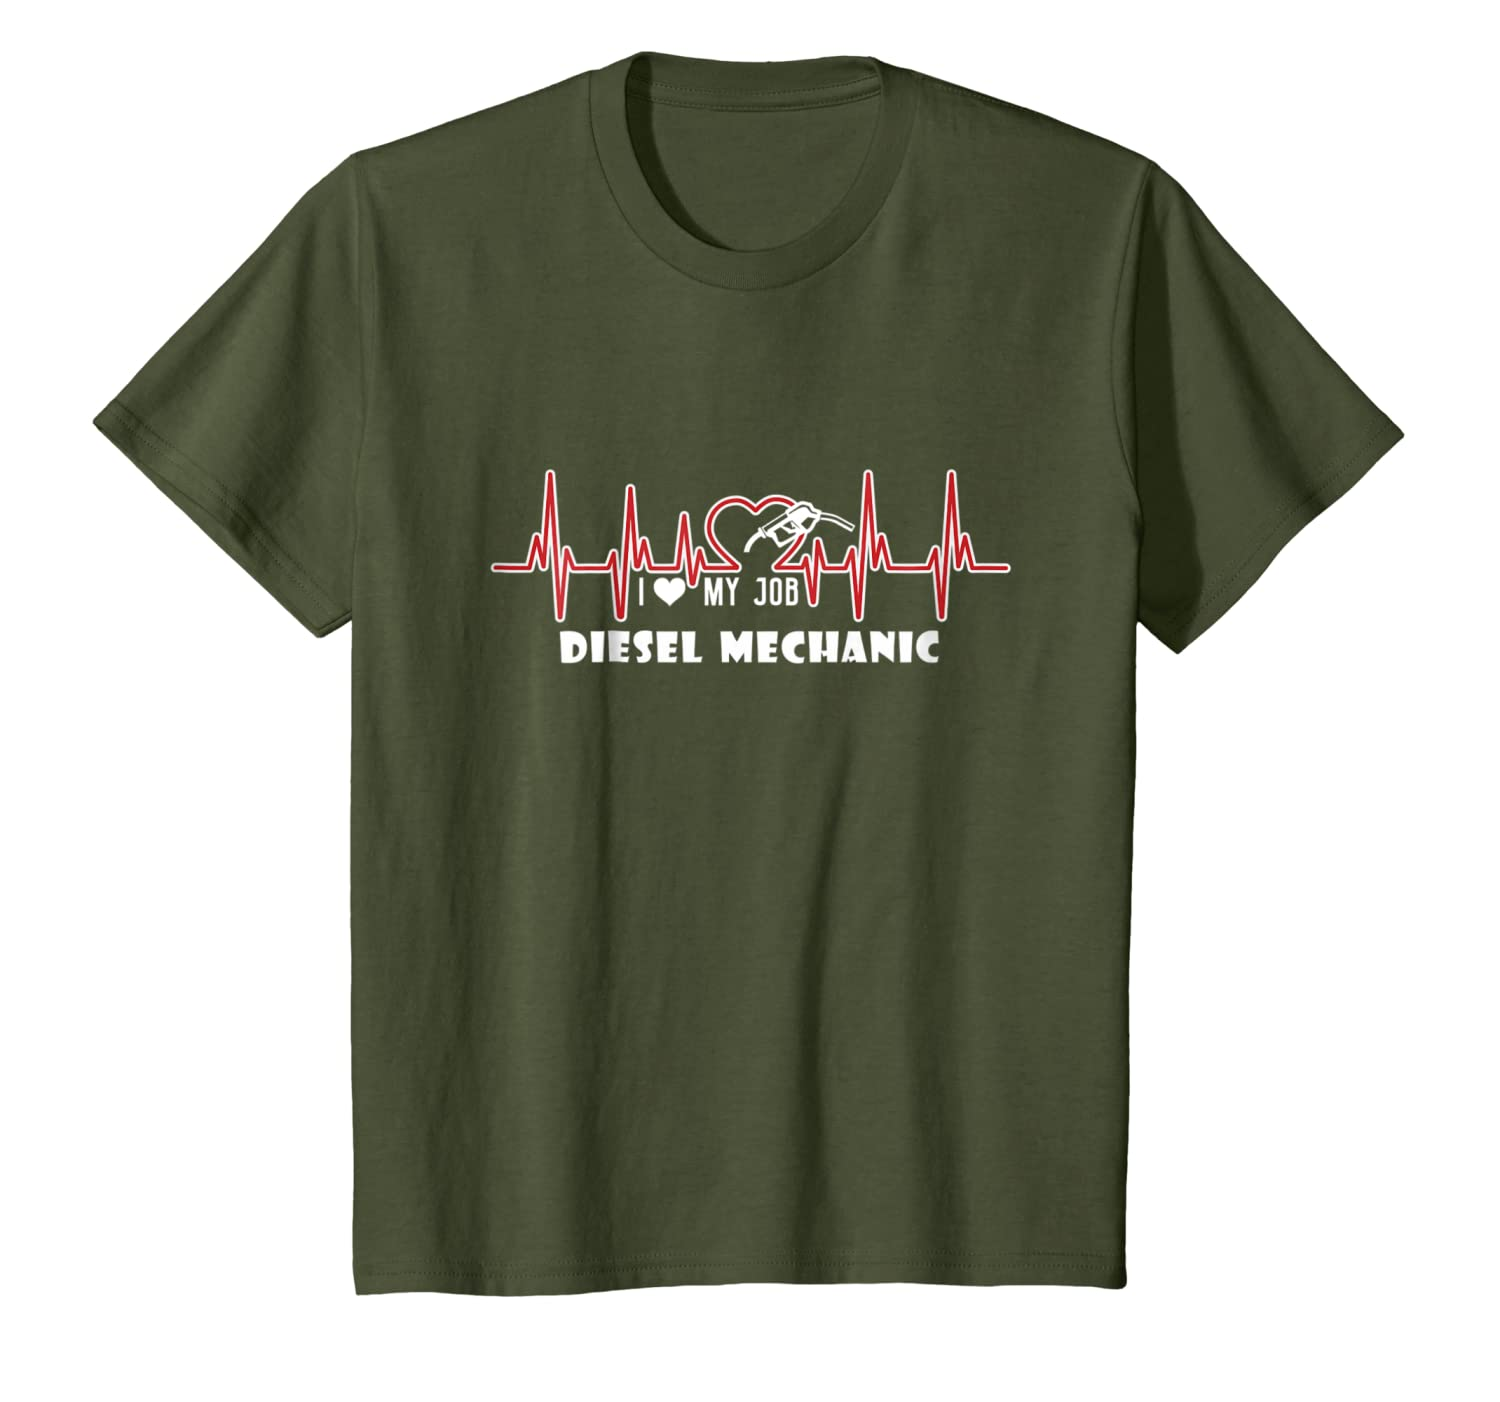 Diesel Mechanic Shirts – Diesel Mechanic Heart T shirt